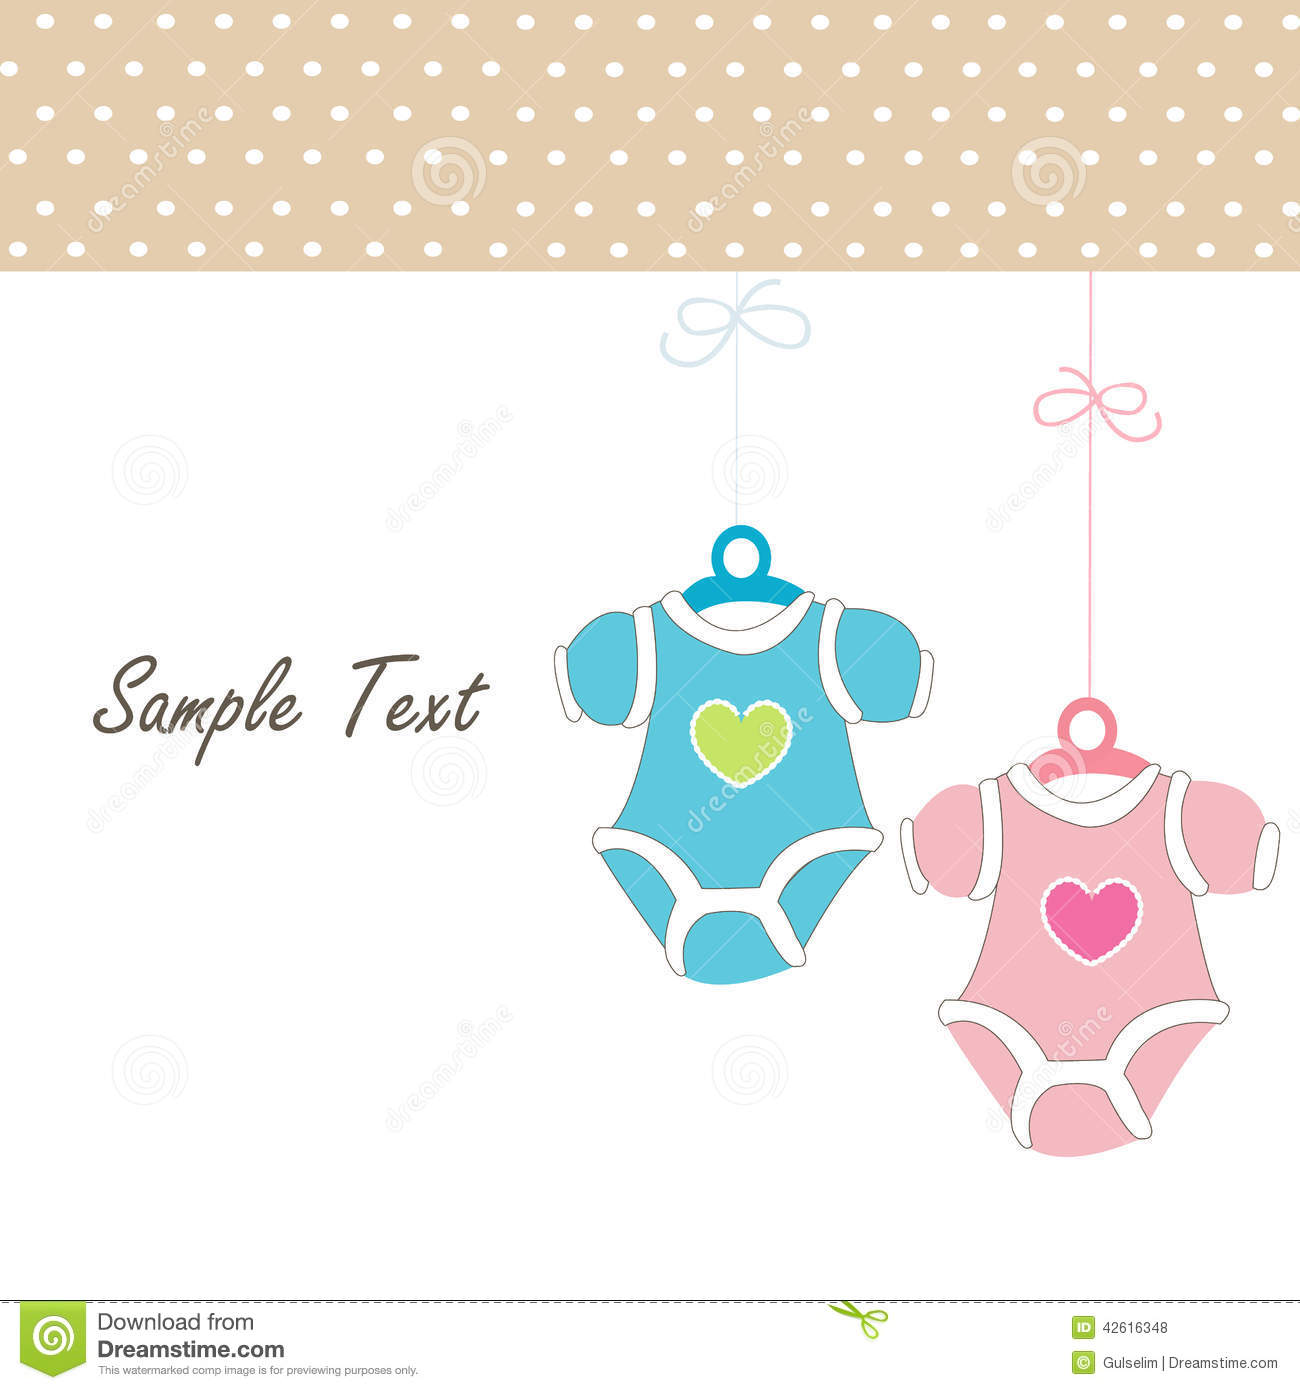 Baby Card Girl Hanging Baby Baby Clothing Icons Stock Vector - Image: 42616348